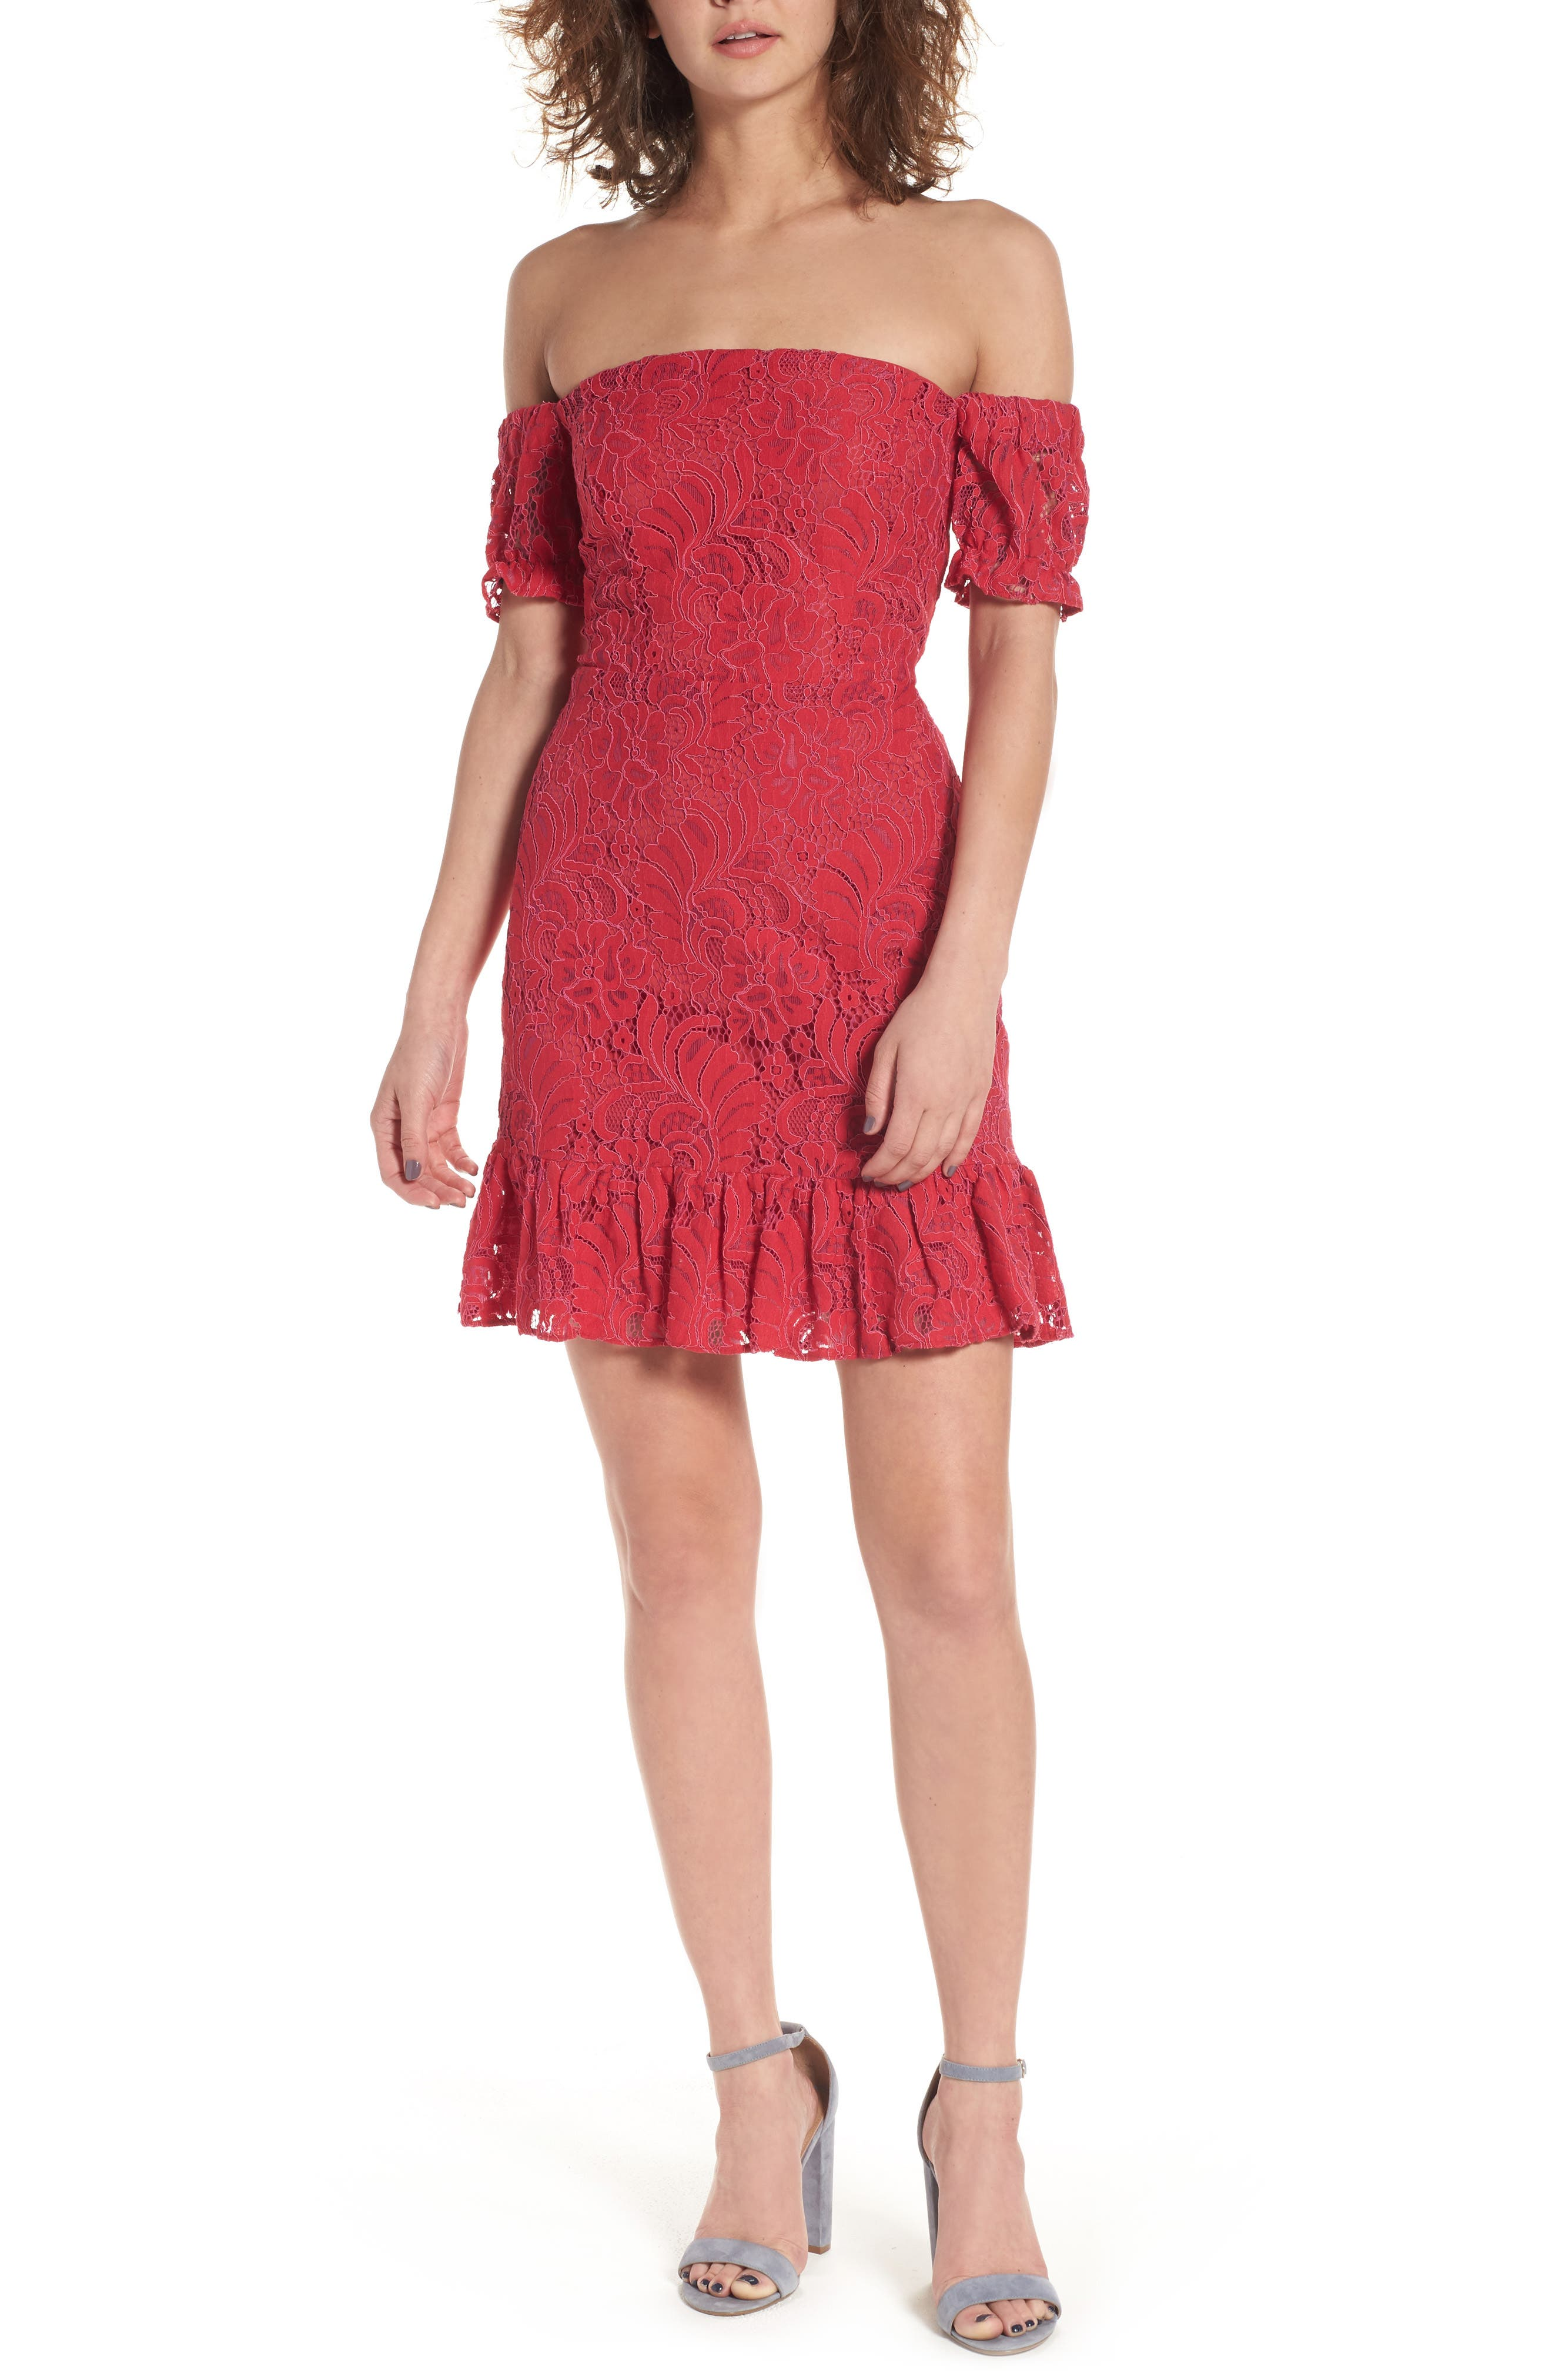 devlin Cecily Lace Off the Shoulder Dress